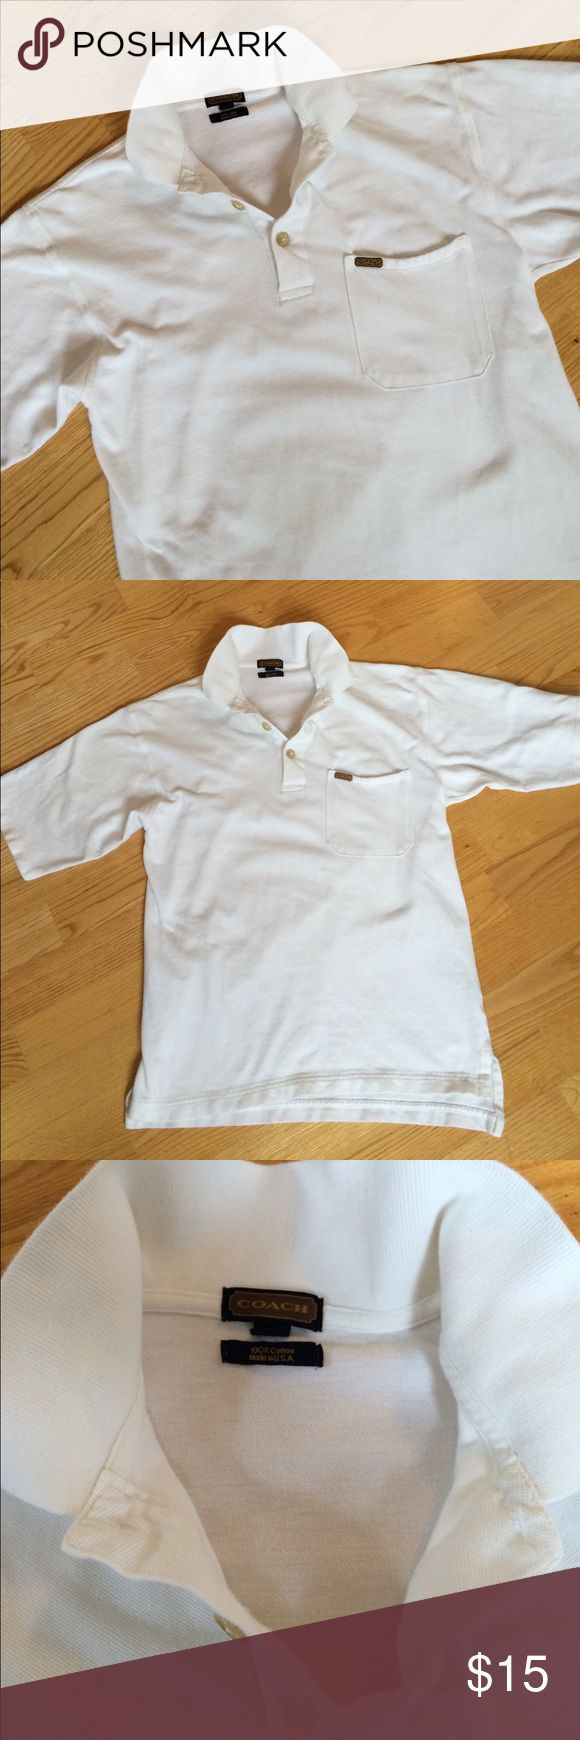 "White Coach Small Polo shirt with pocket 20"" across, shoulder to hem is 26. Stain on left shoulder shown in photo. No holes. Back hem longer then front. Pop a collar and be on your way. Coach Shirts Polos"